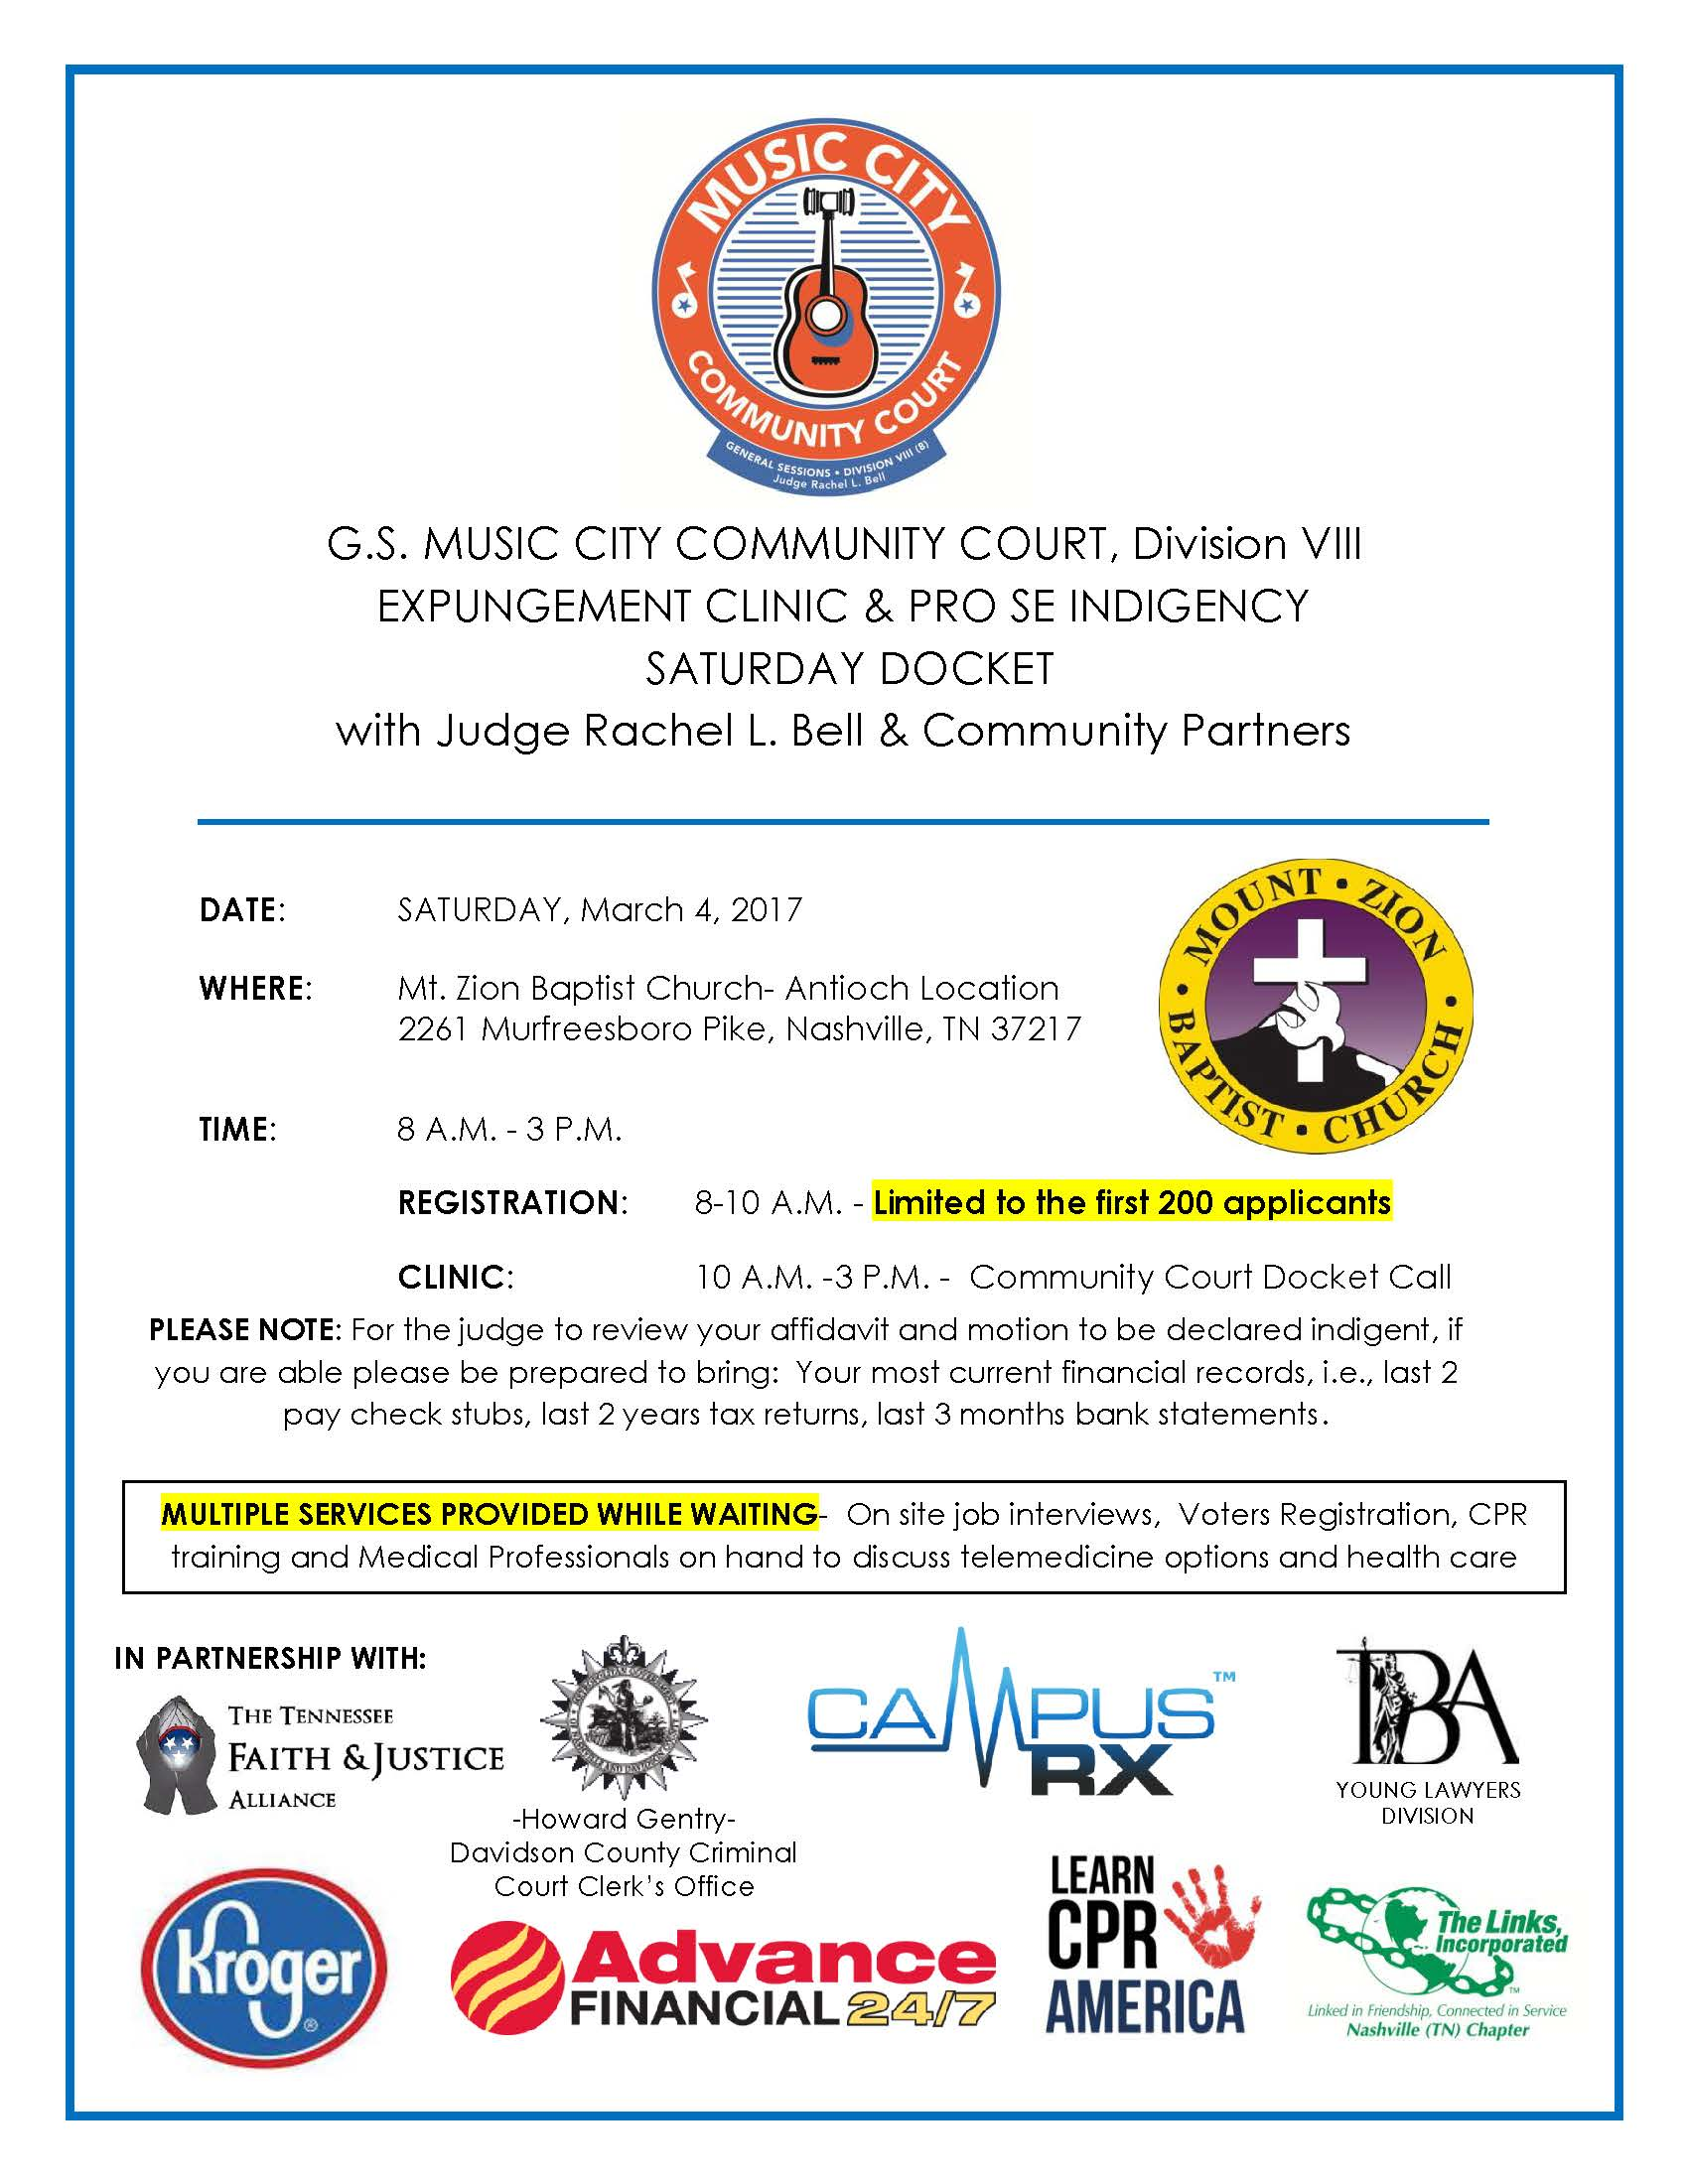 Music City Community Court | General Sessions Court of